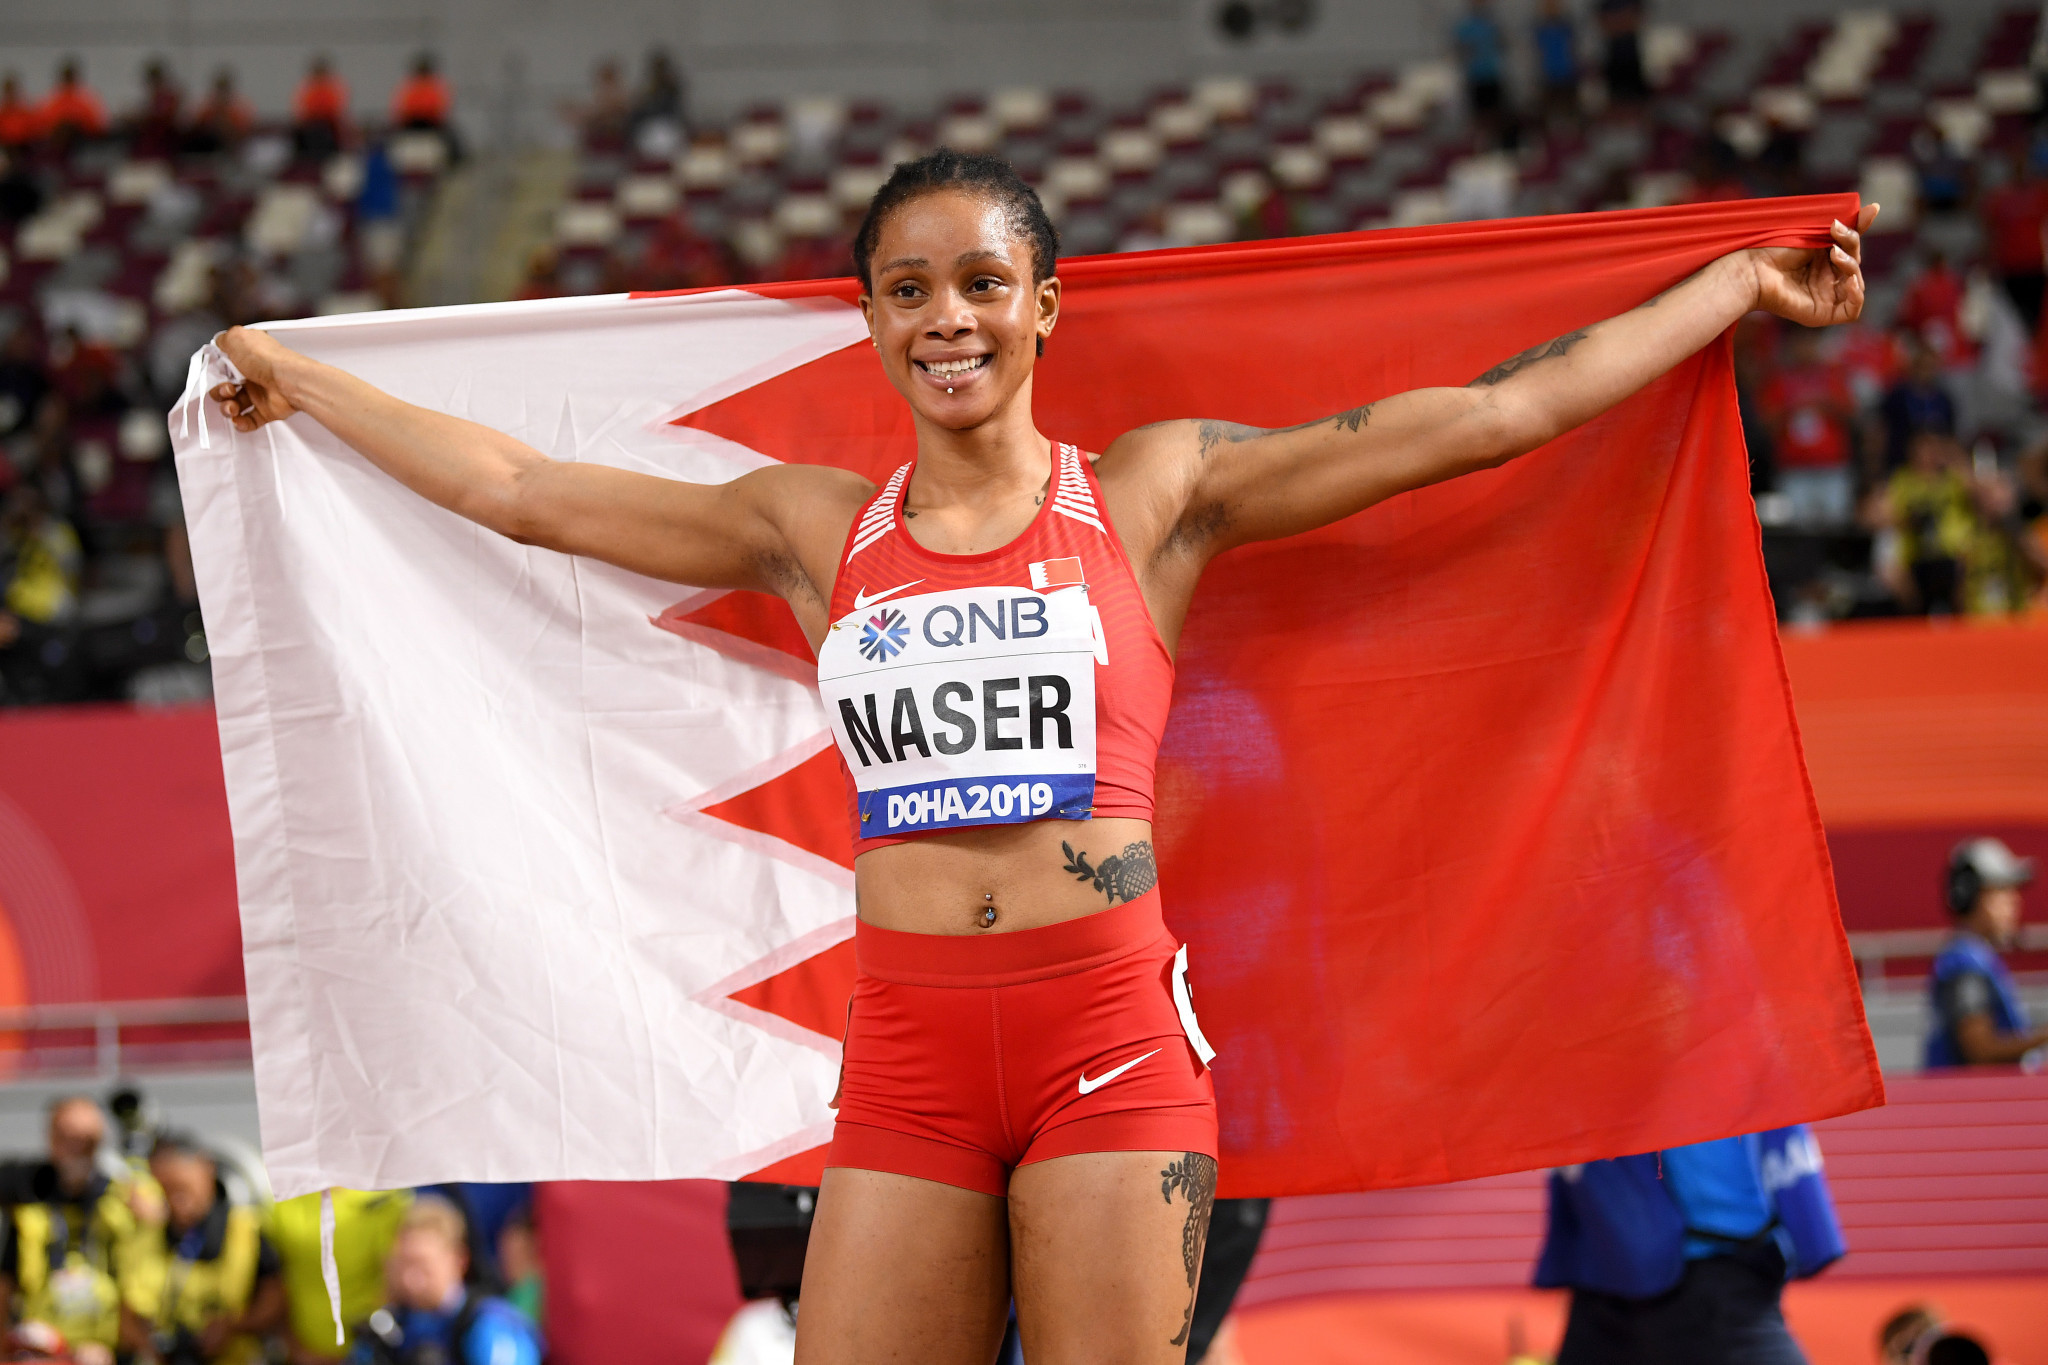 Salwa Eid Naser is another runner who switched allegiance to Bahrain but is now accused of a doping offence which could cost her the 400m gold medal she won at last year's World Athletics Championships in Doha ©Getty Images